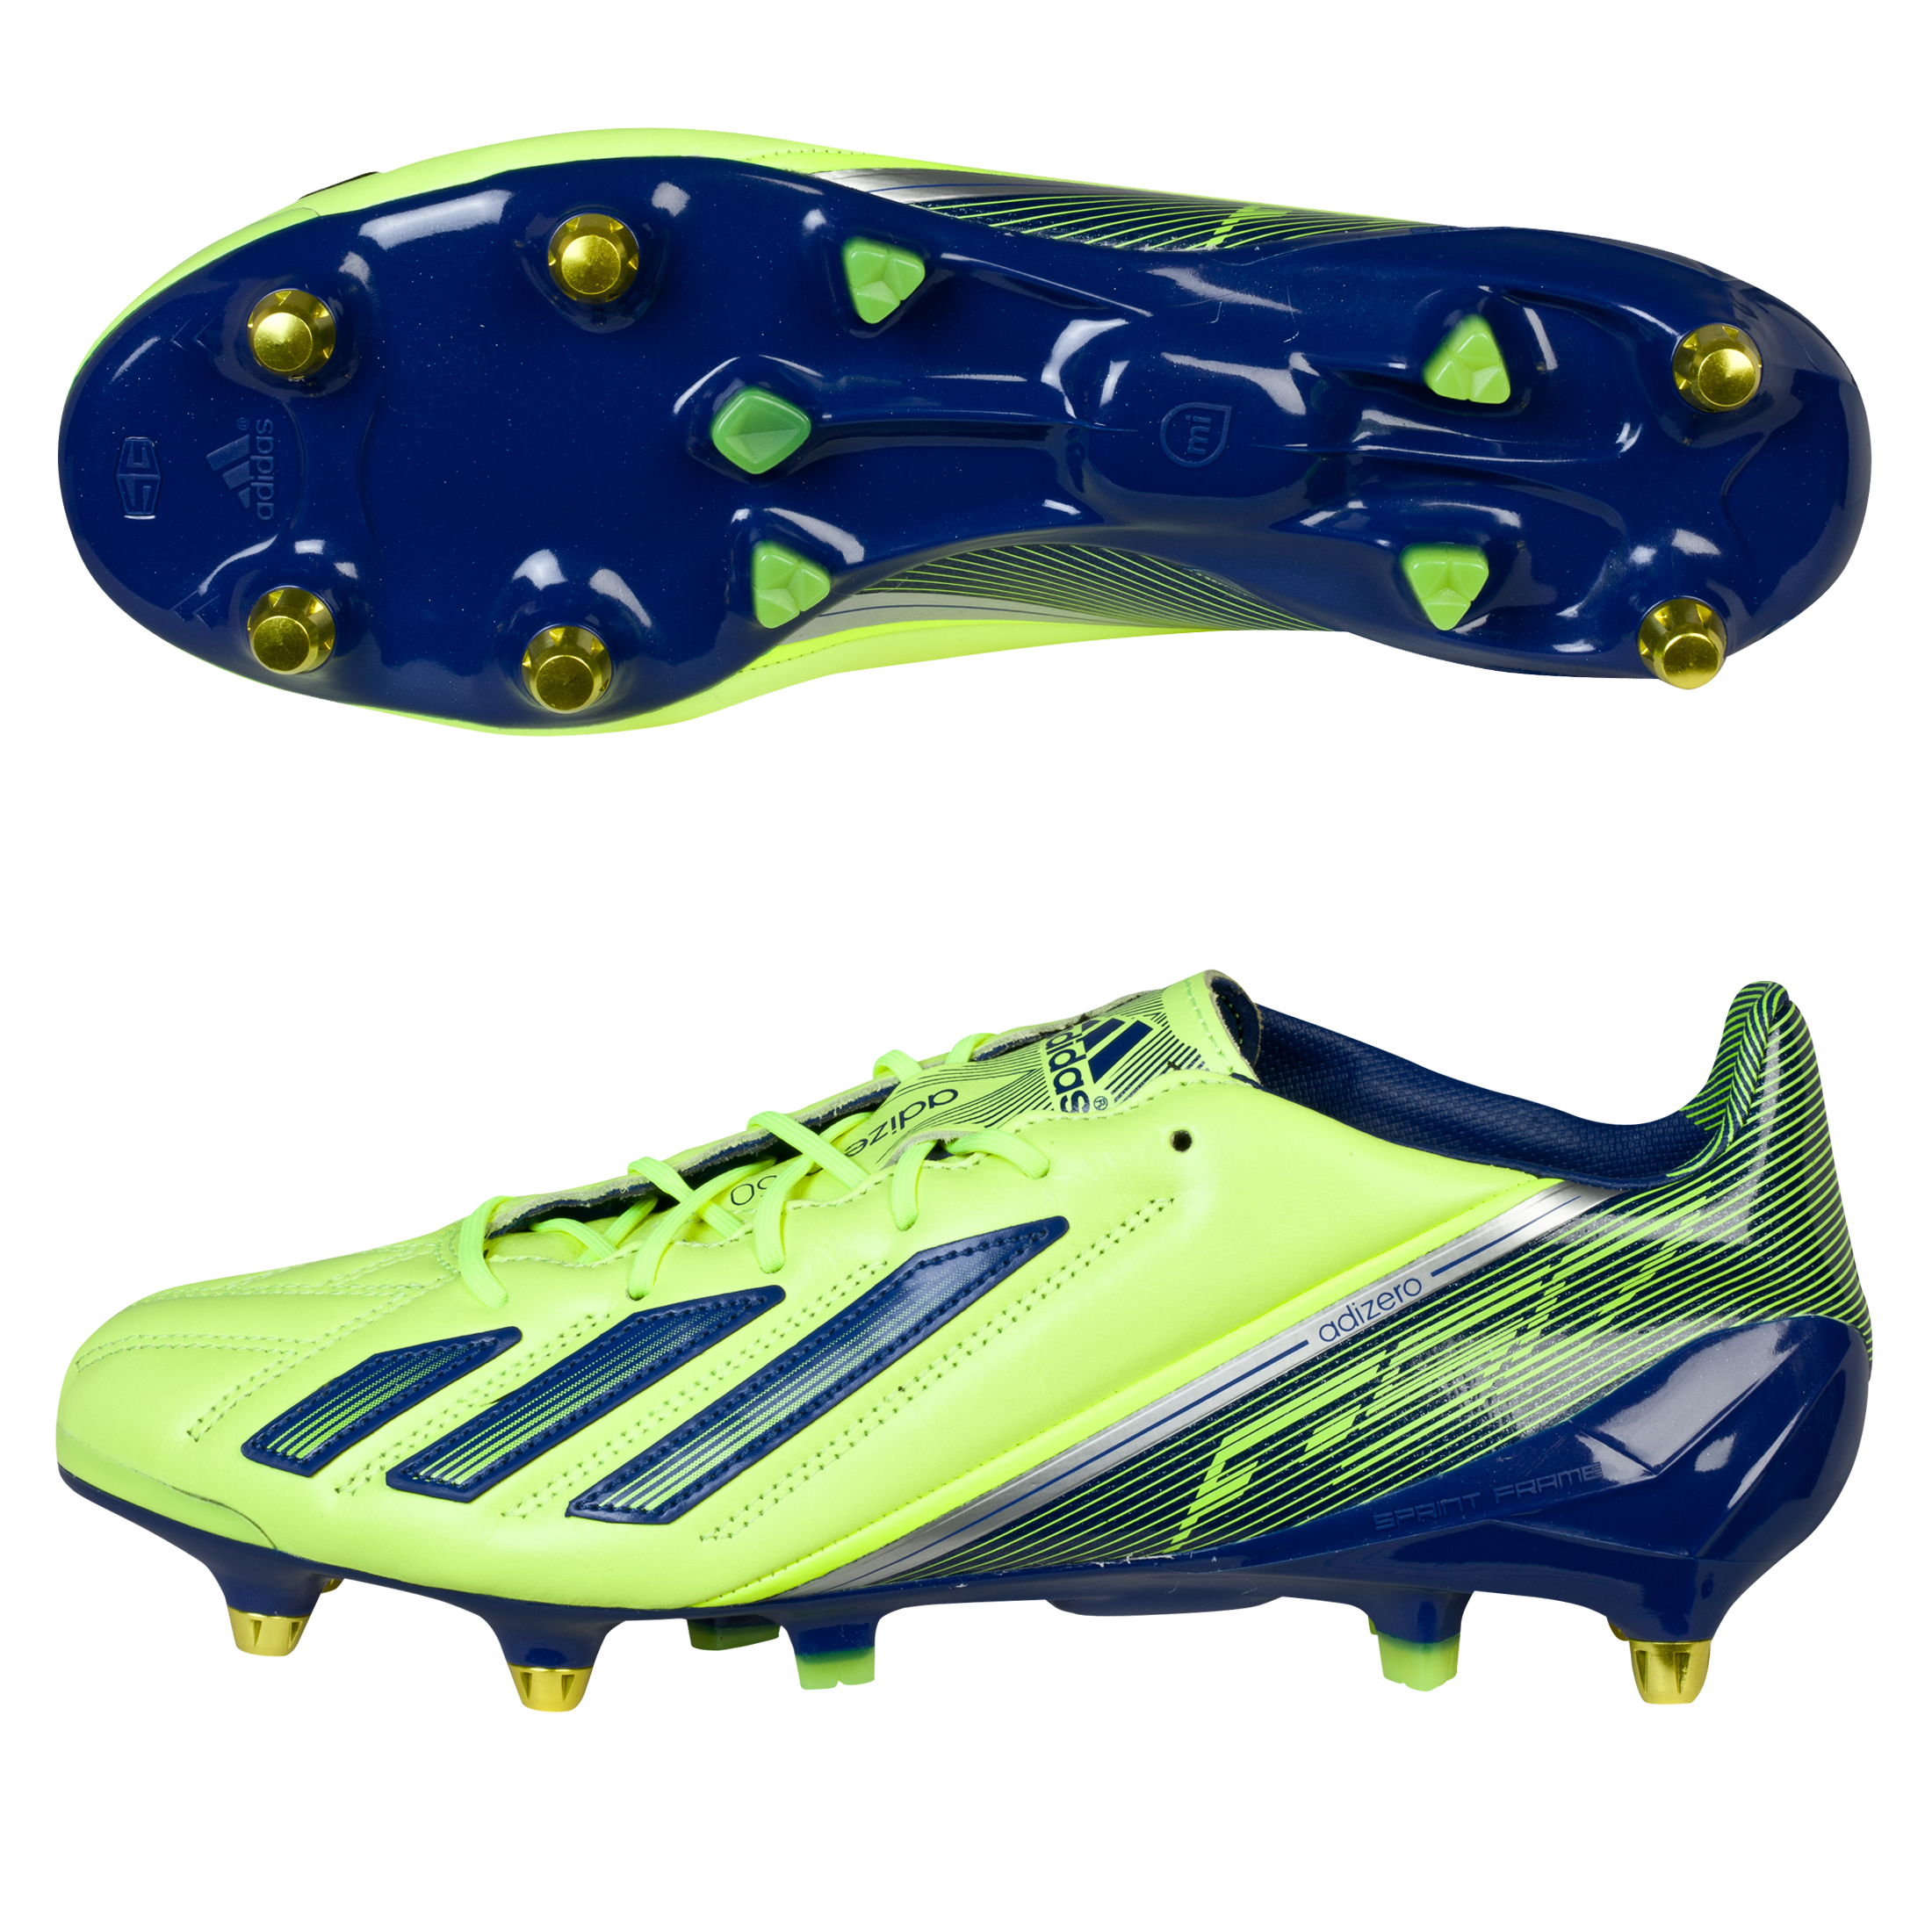 Adidas adizero F50 XTRX Leather Soft Ground Football Boots Yellow